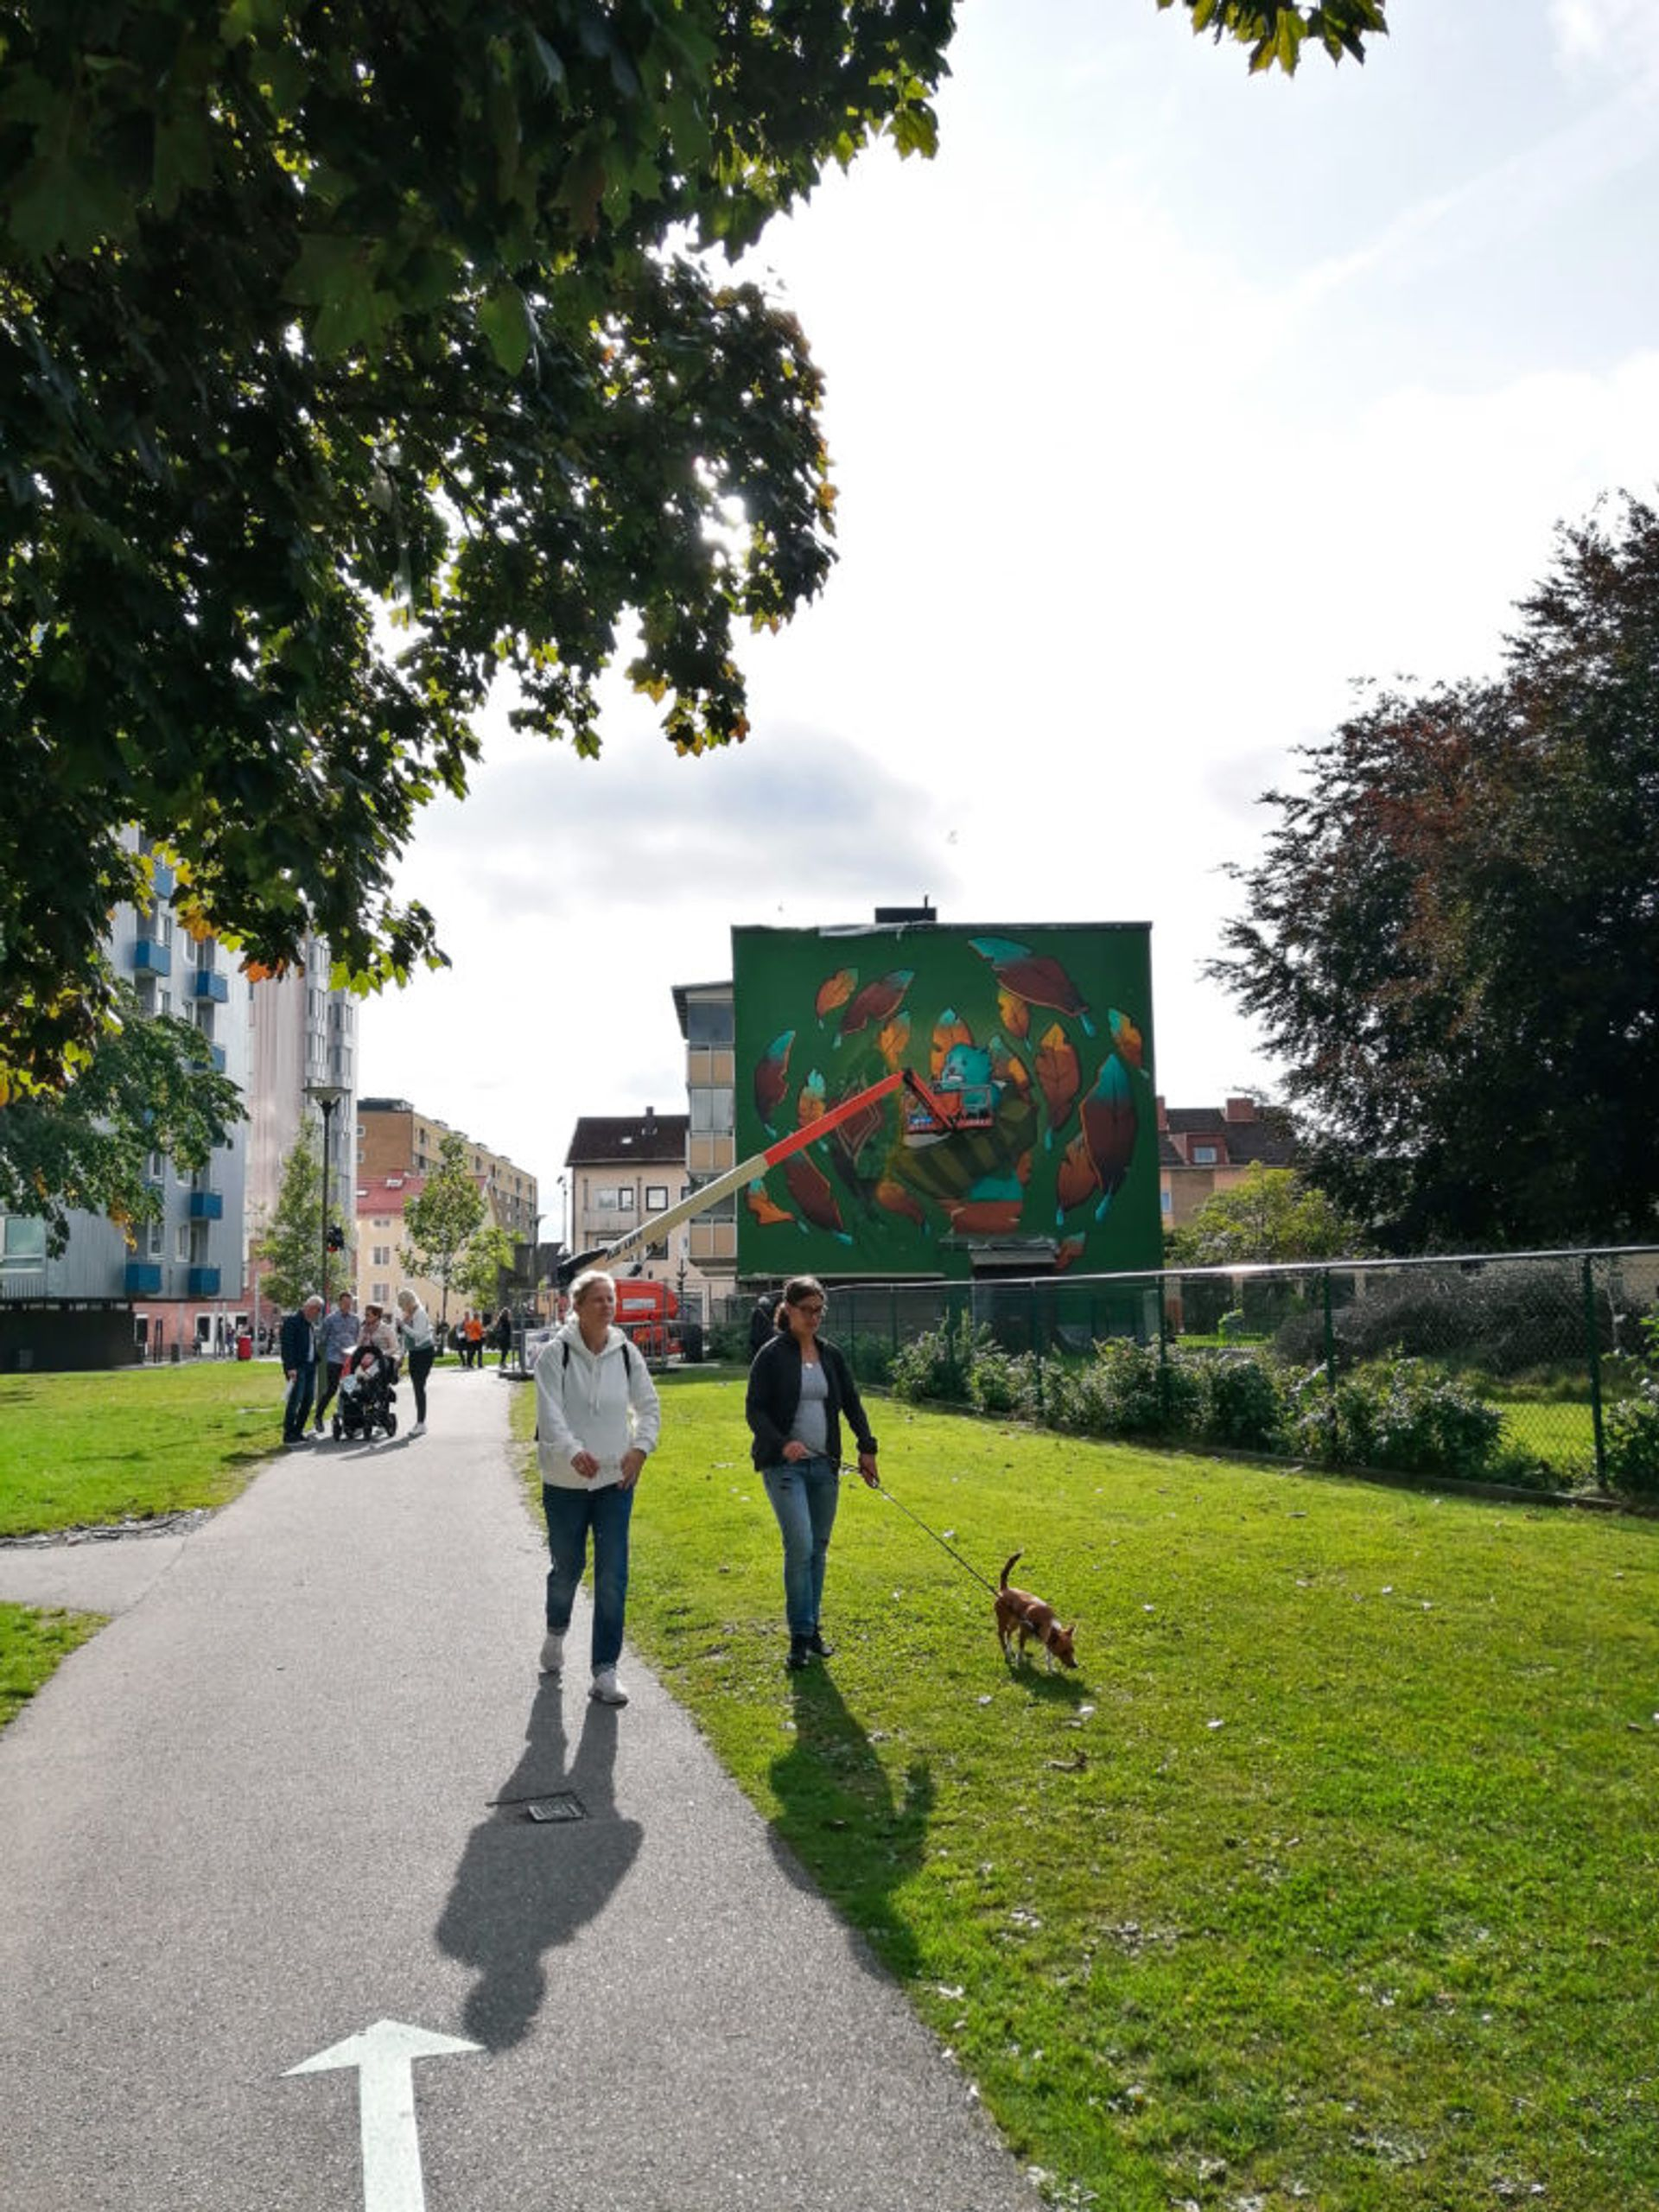 Women walking a dog in front of a mural being painted in Norrby.